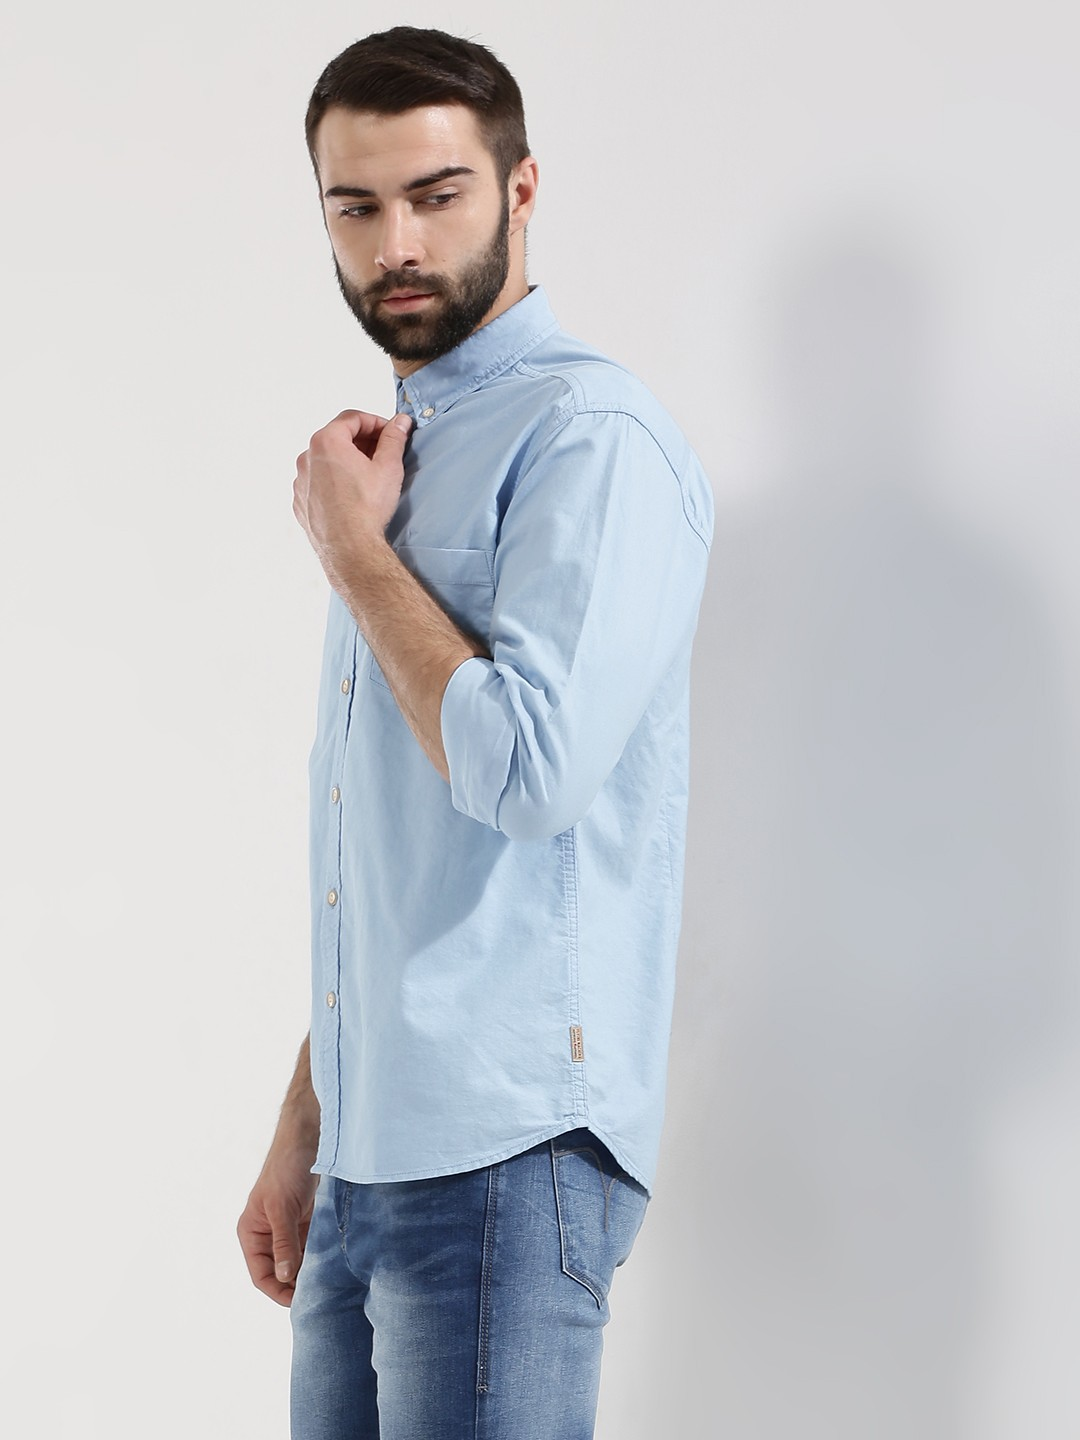 ... Down Oxford Shirt For Men - Men's Blue Casual Shirts Online in India